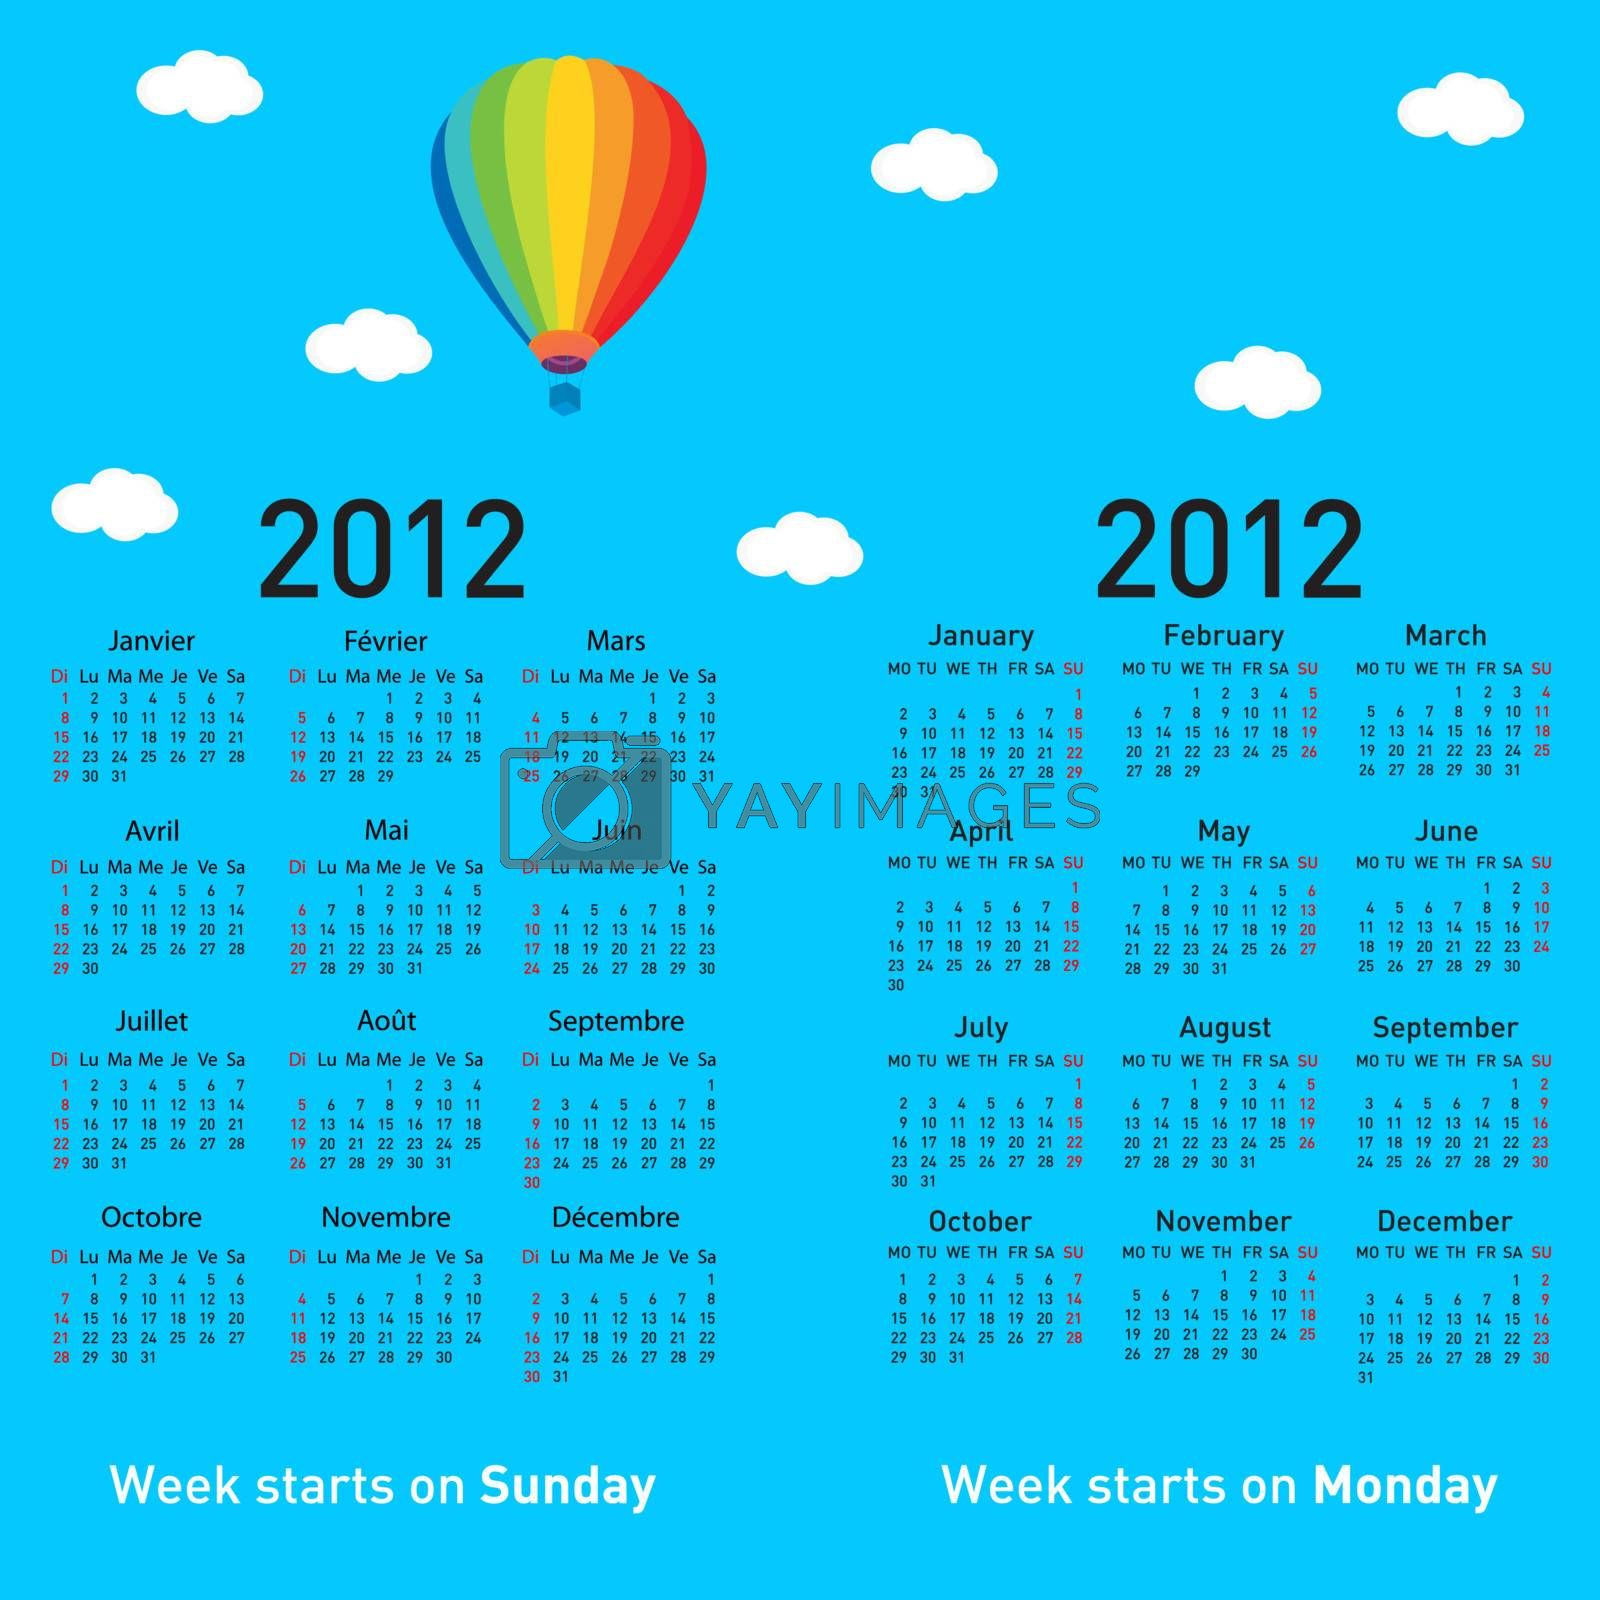 Stylish French calendar with balloon and clouds for 2012. In French and English.